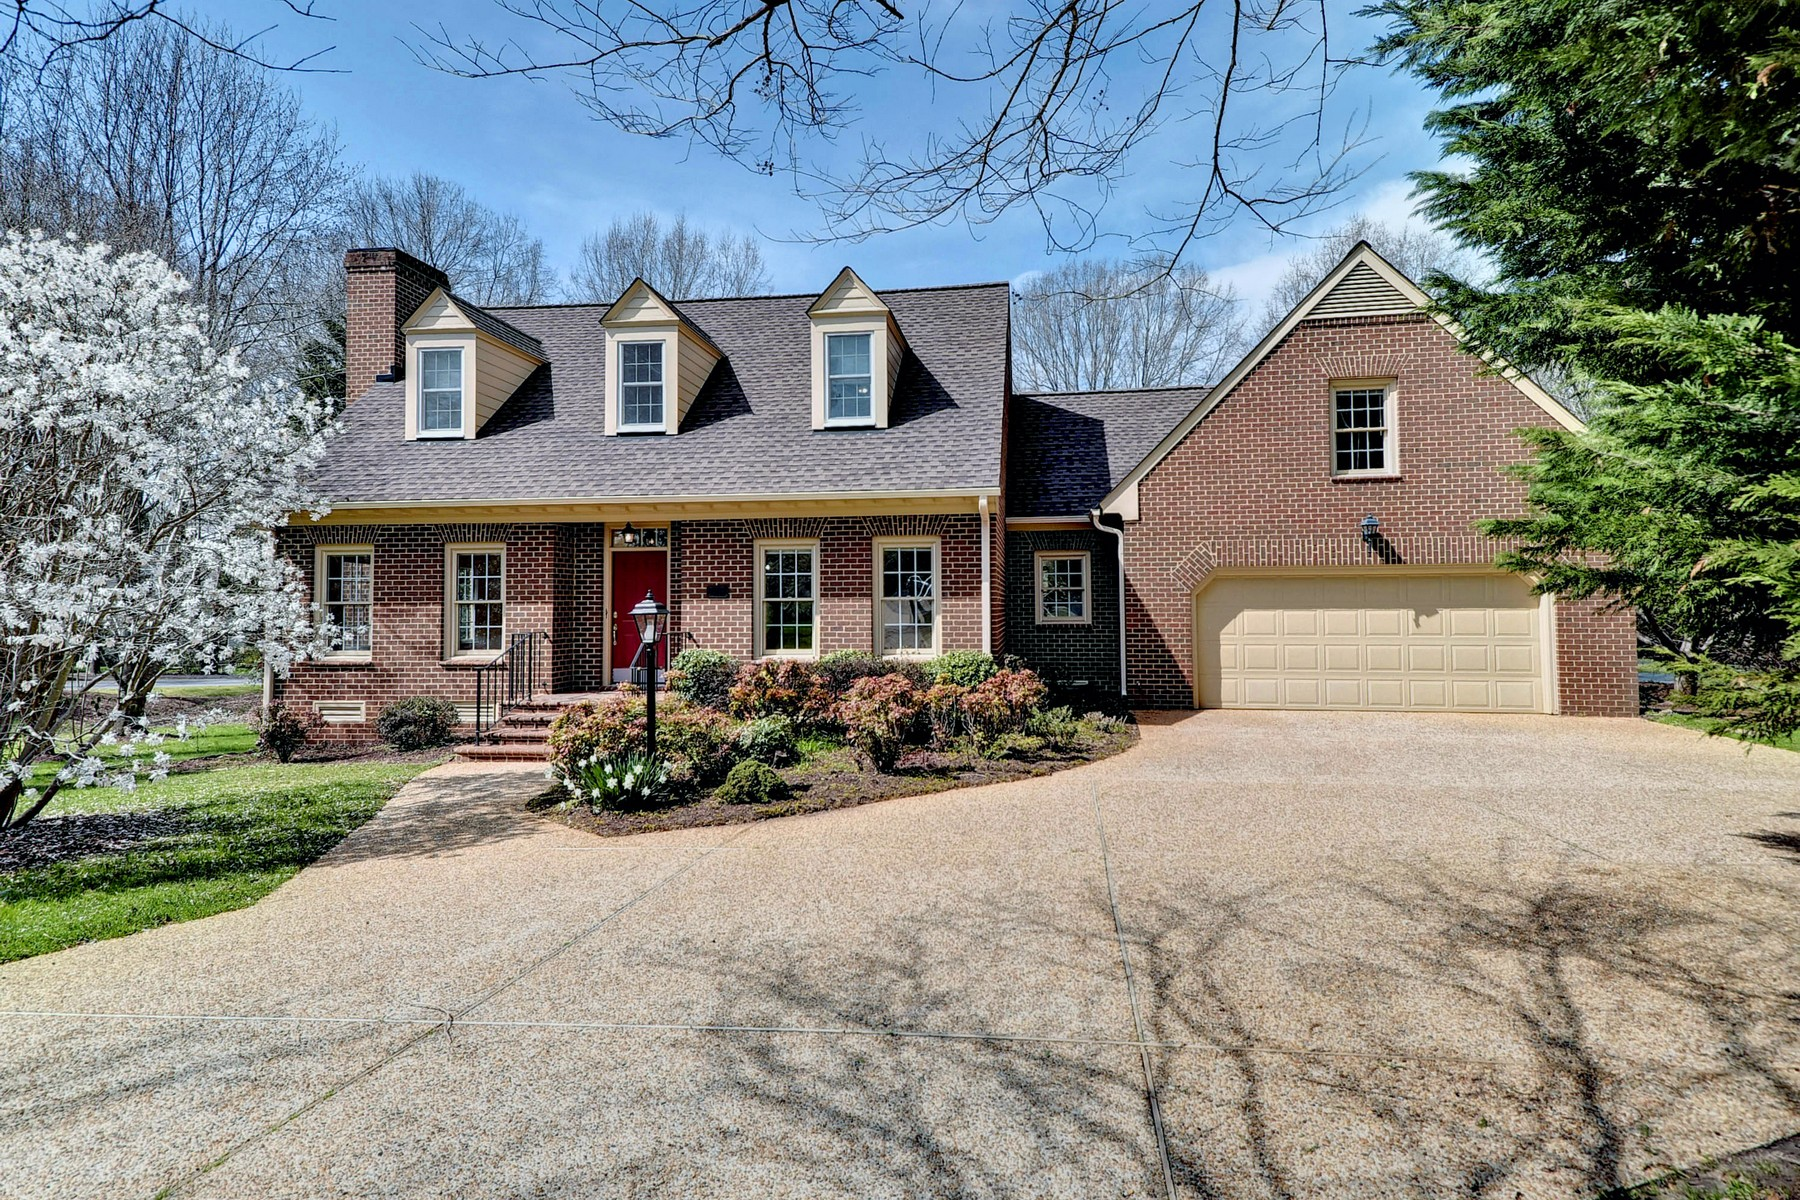 Single Family Home for Sale at 105 Ascot in Ford's Colony 105 Ascot Williamsburg, Virginia 23188 United States